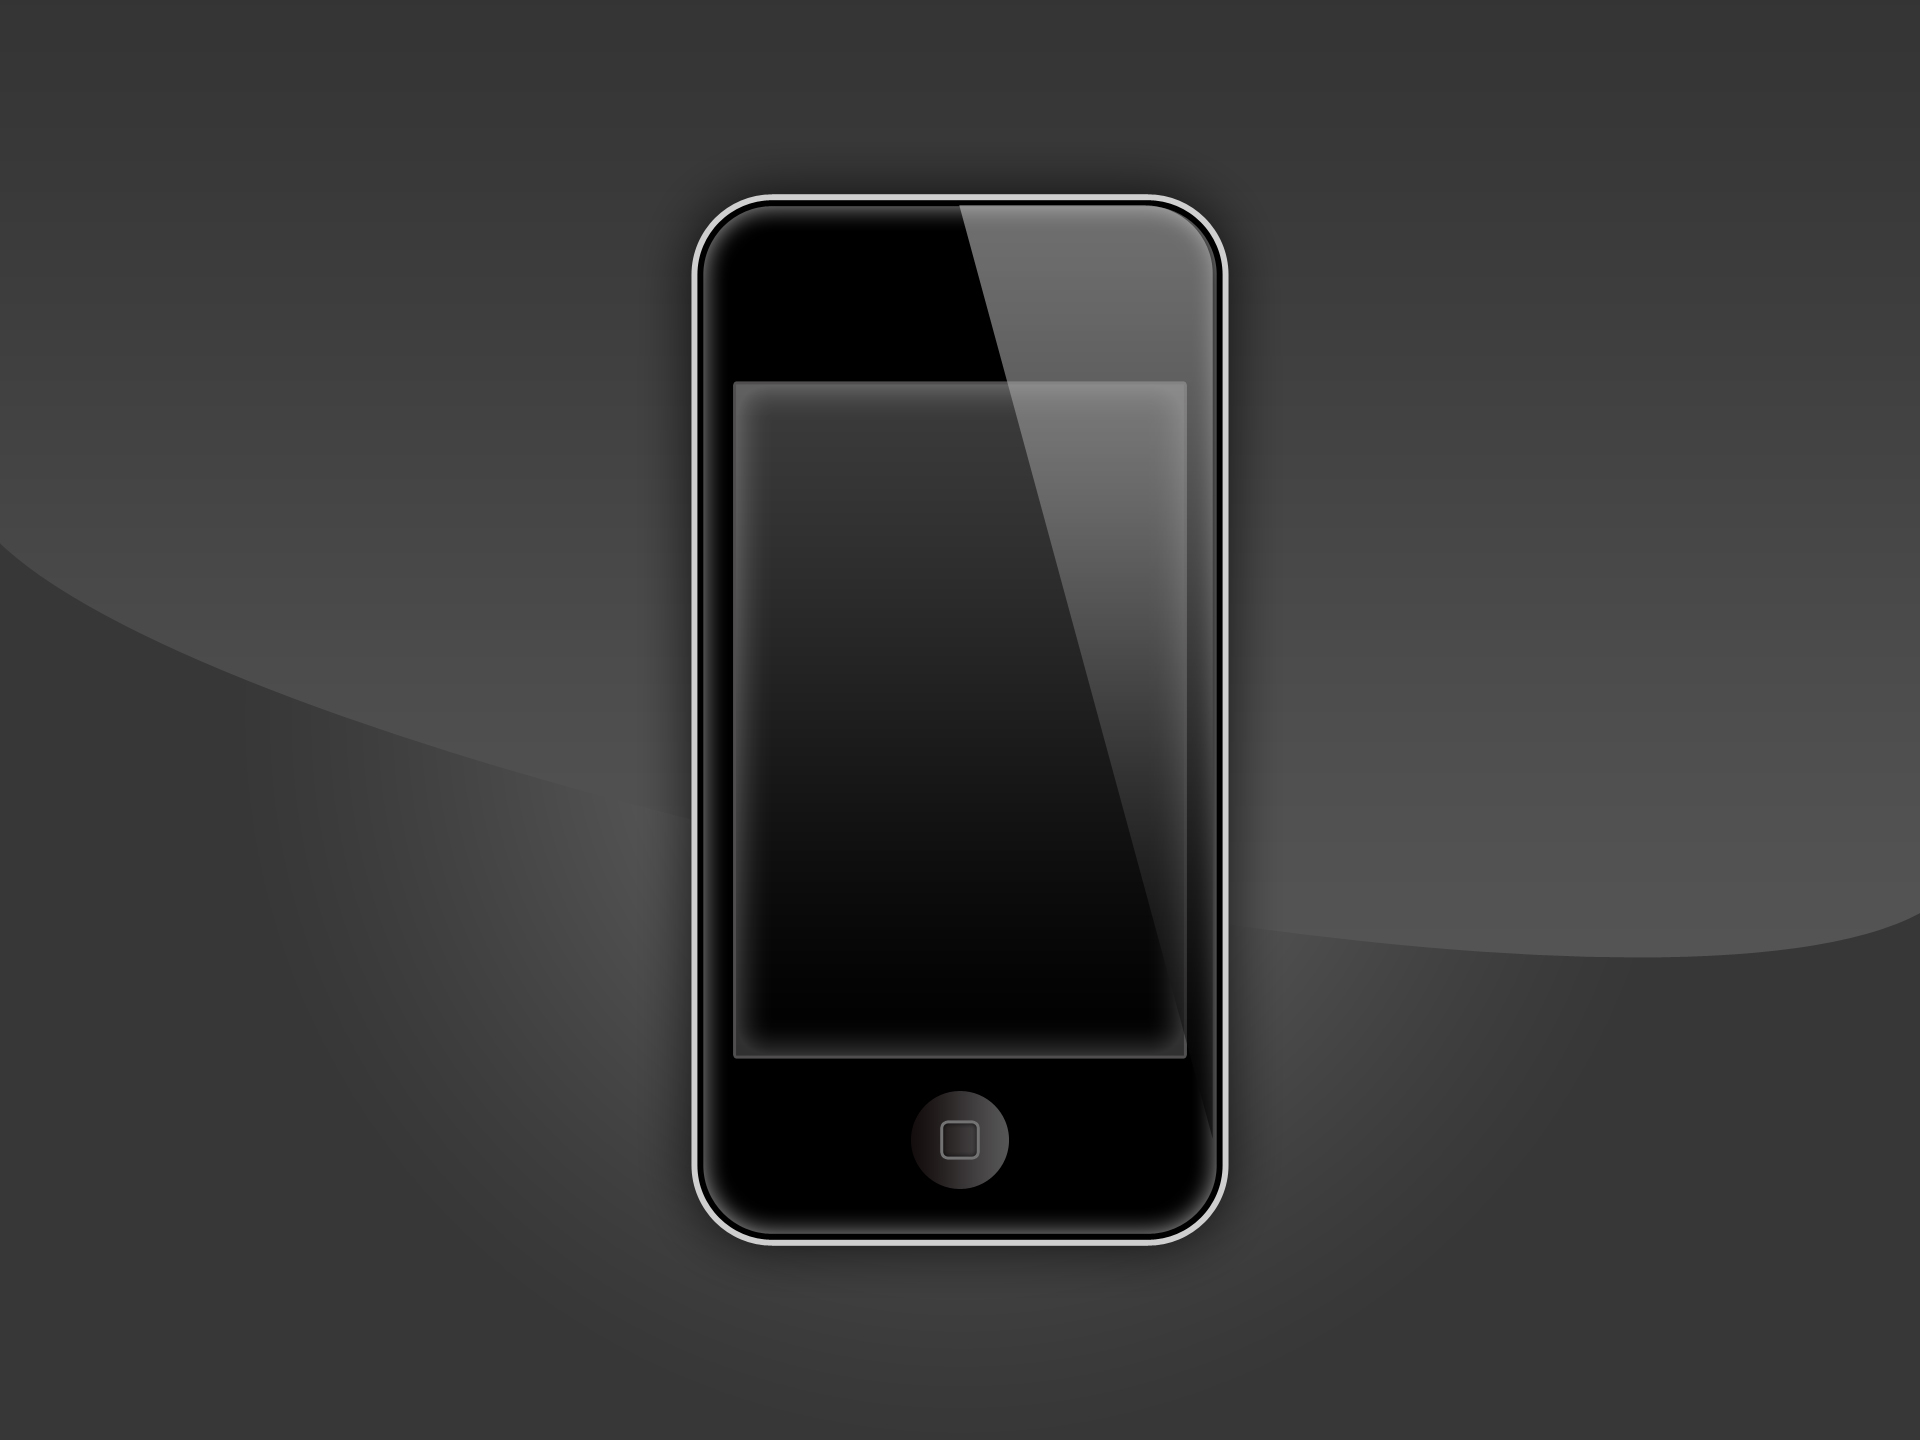 Free Graphics of Mobile Devices